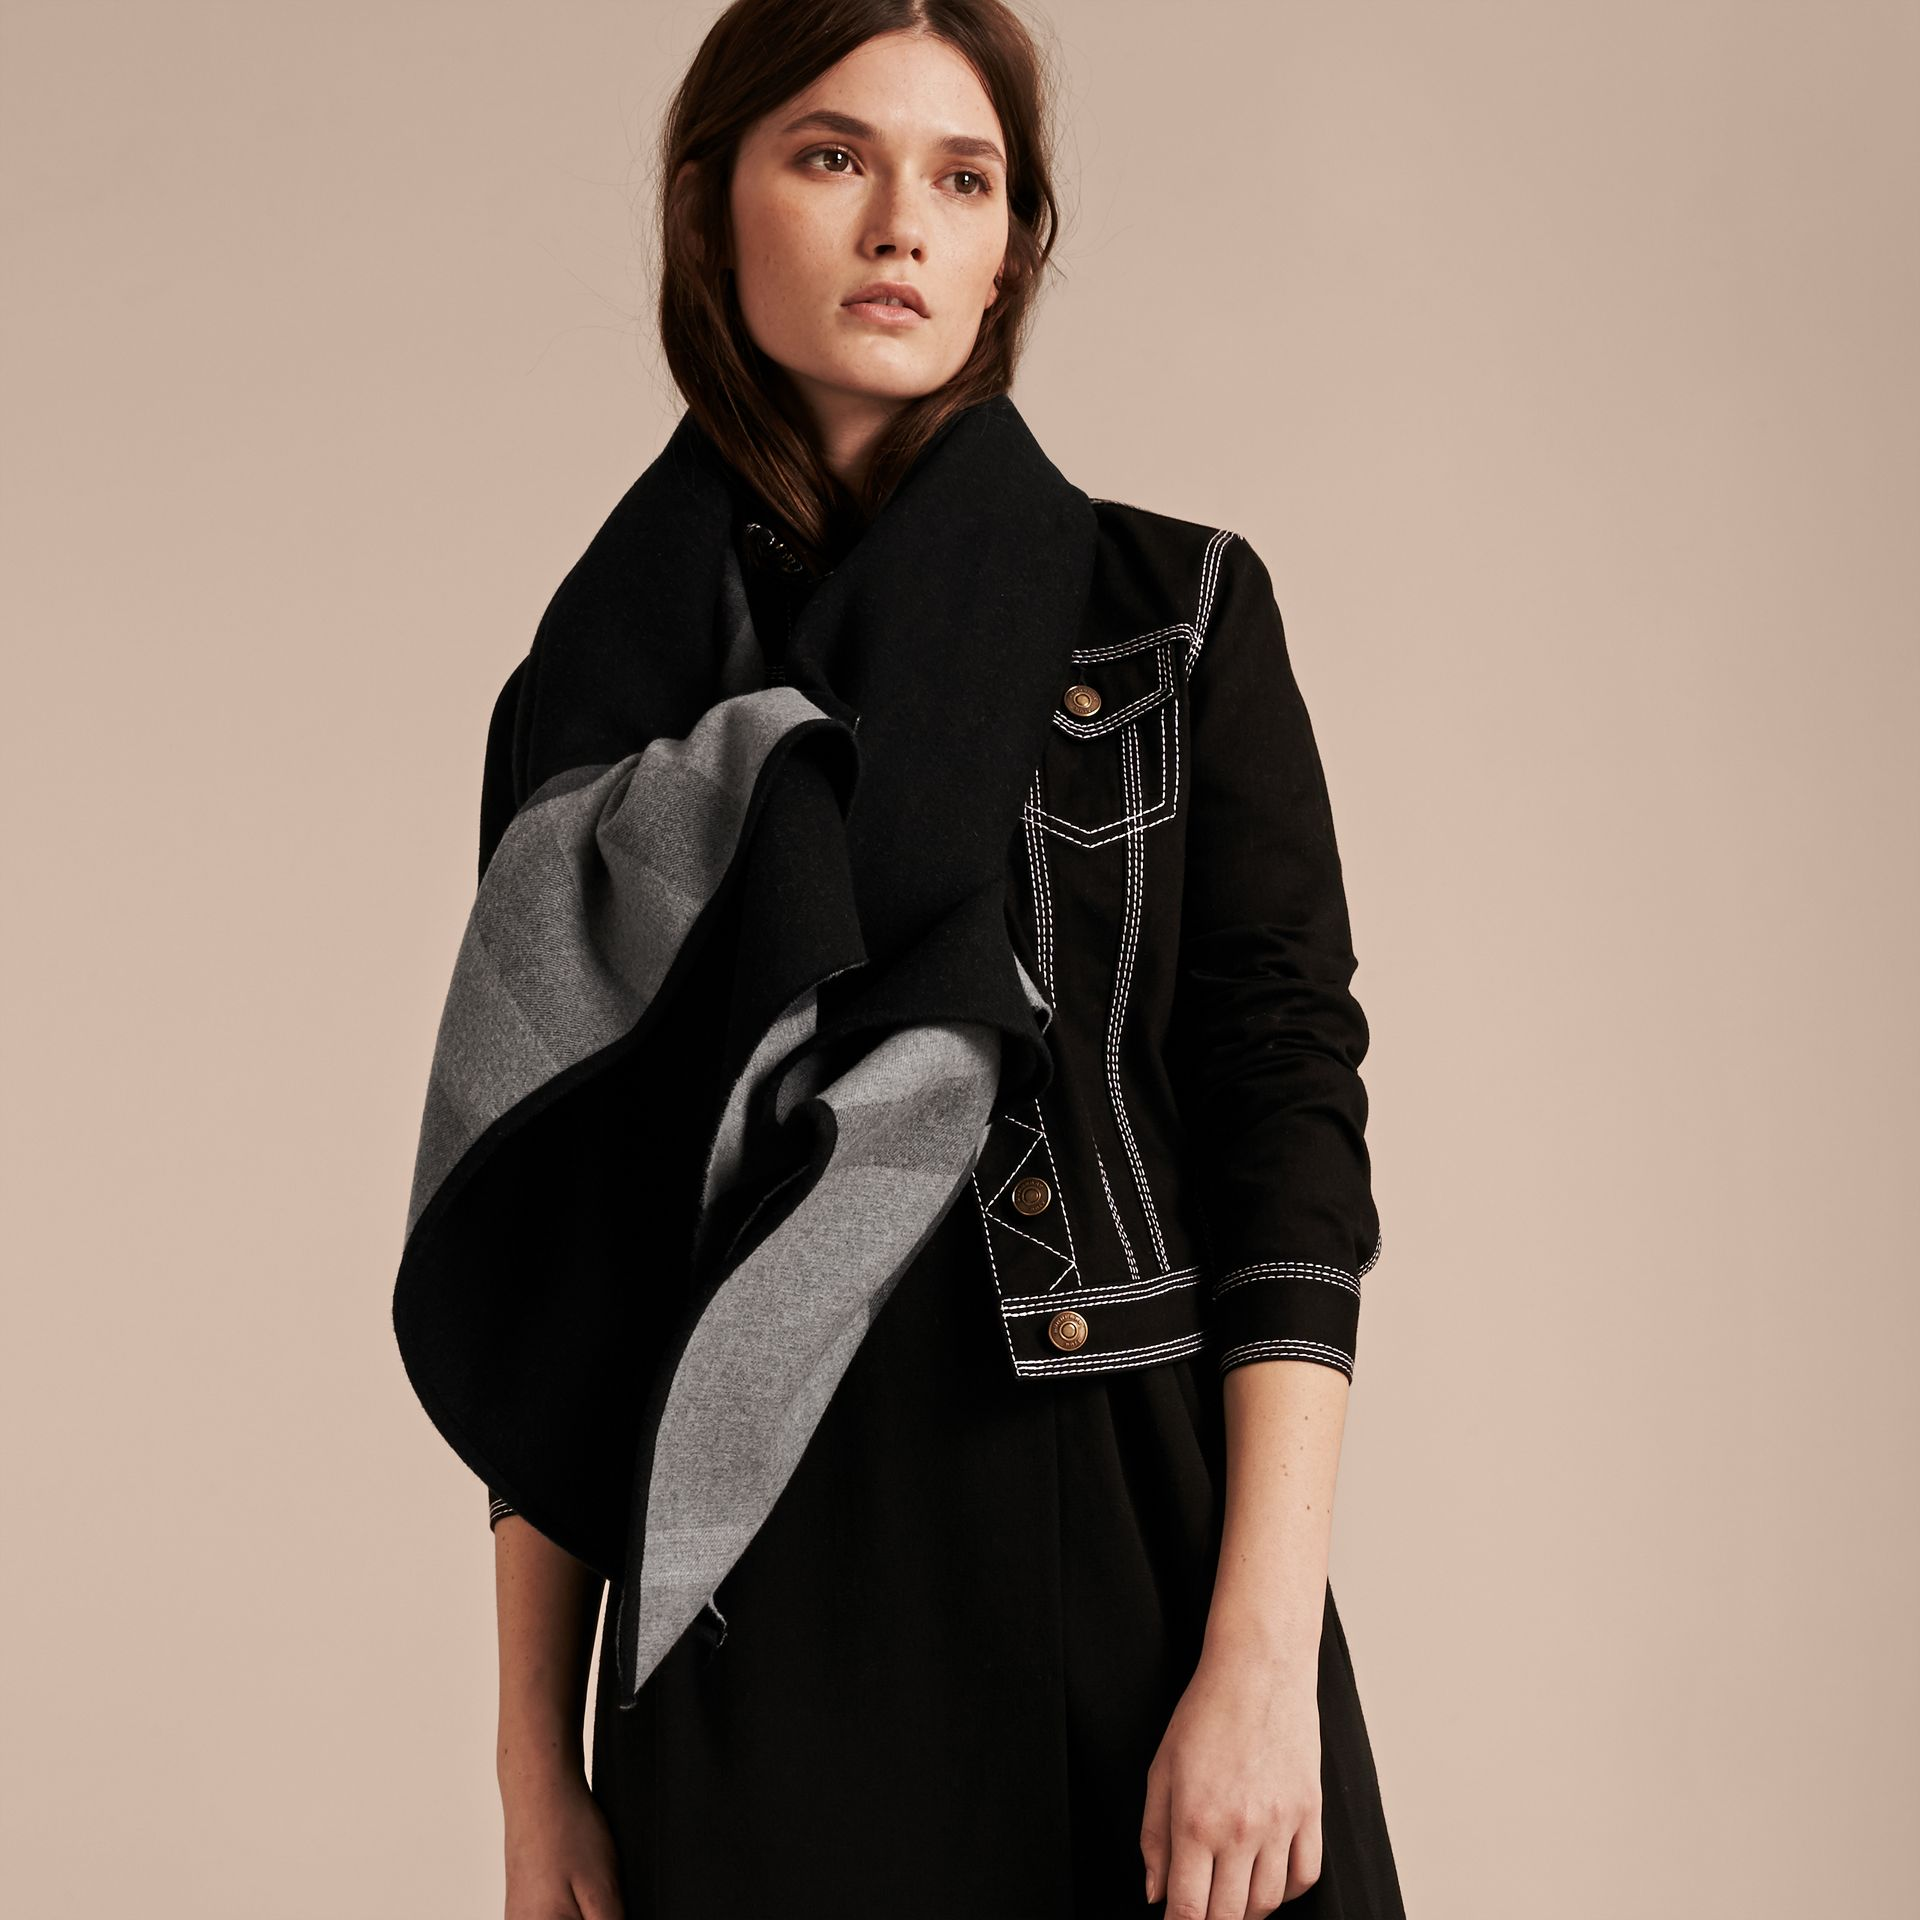 Check-Lined Wool Poncho in Charcoal - Women | Burberry Hong Kong - gallery image 2